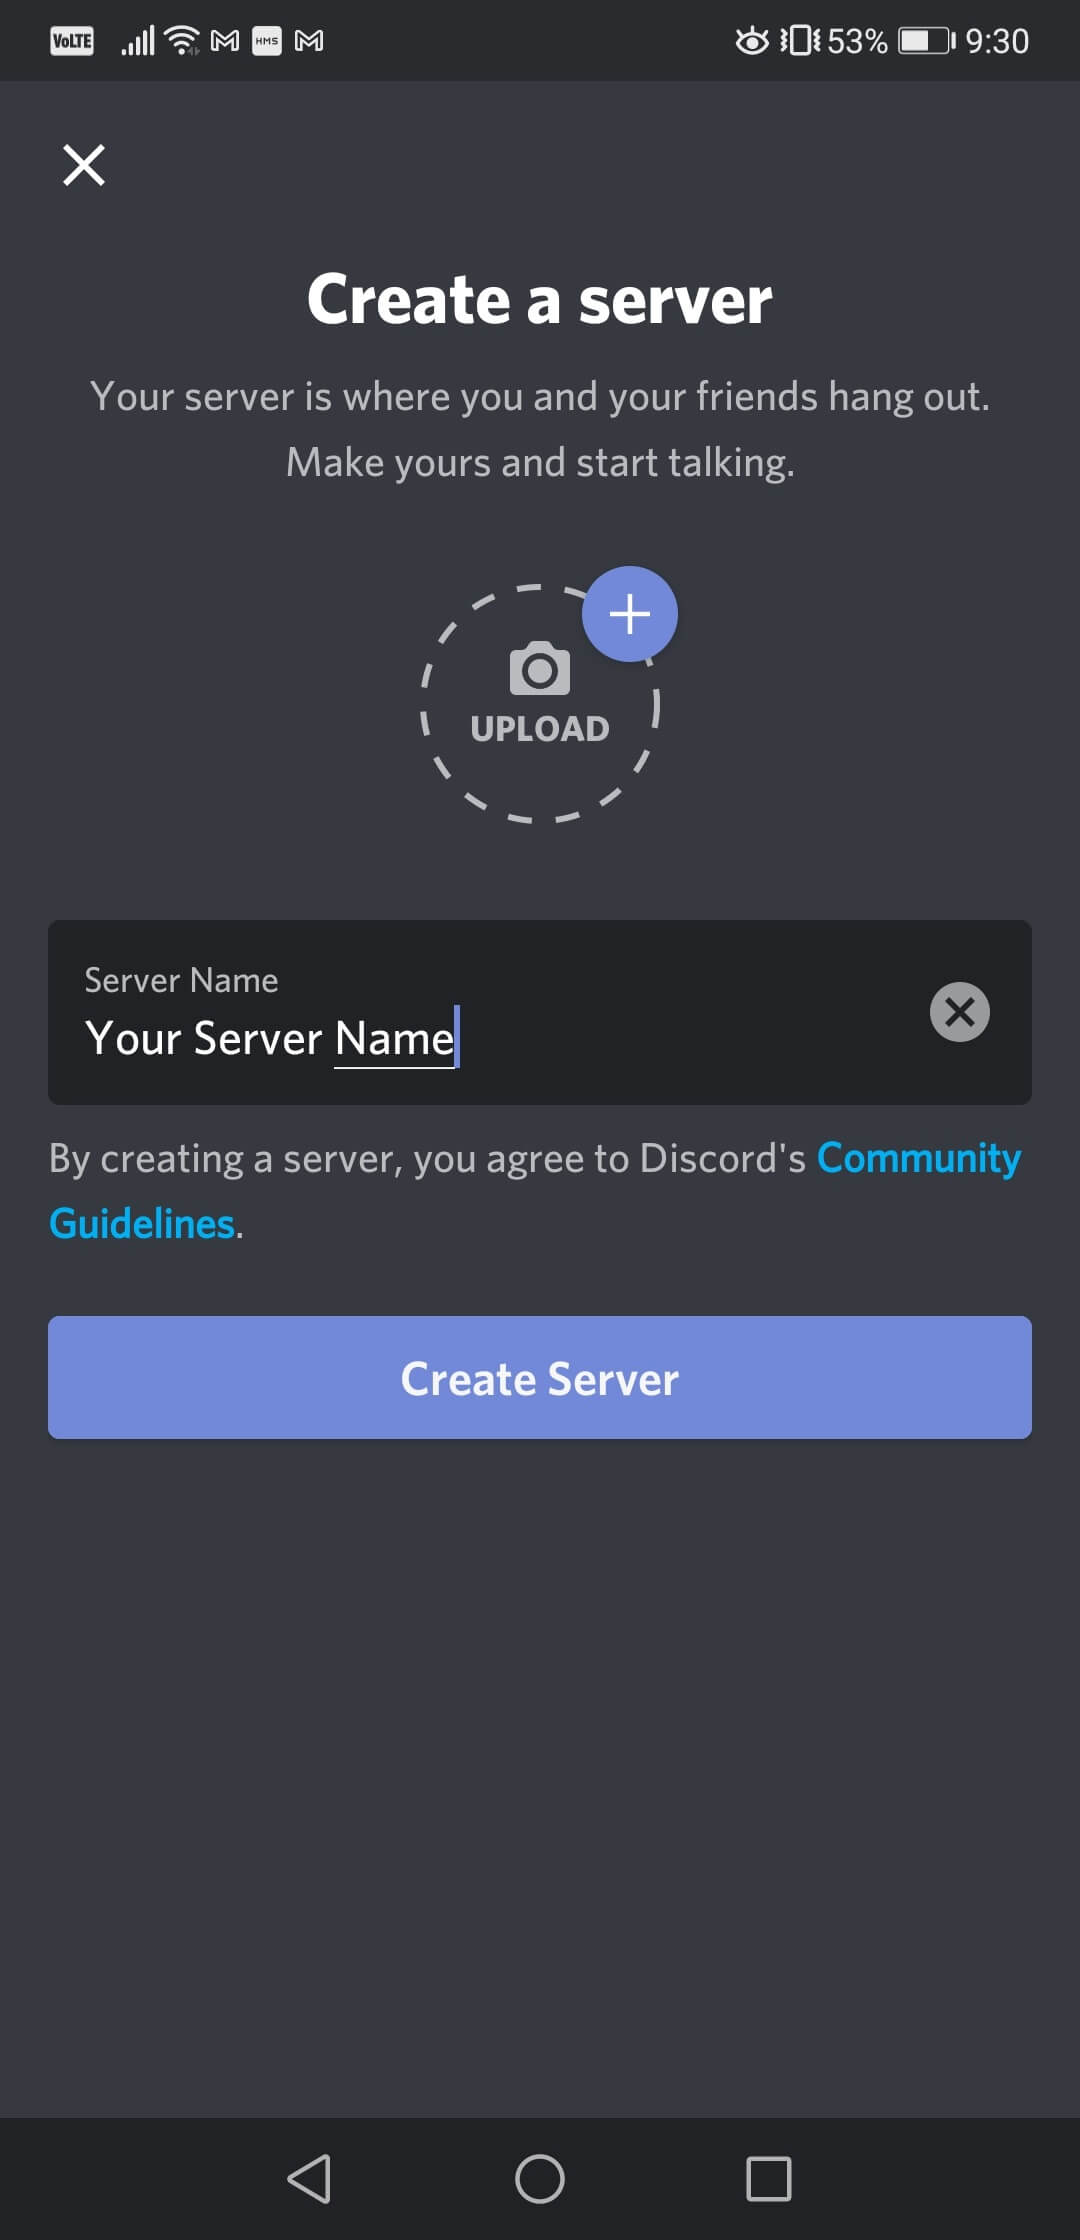 How to create a Discord server on a mobile phone 3